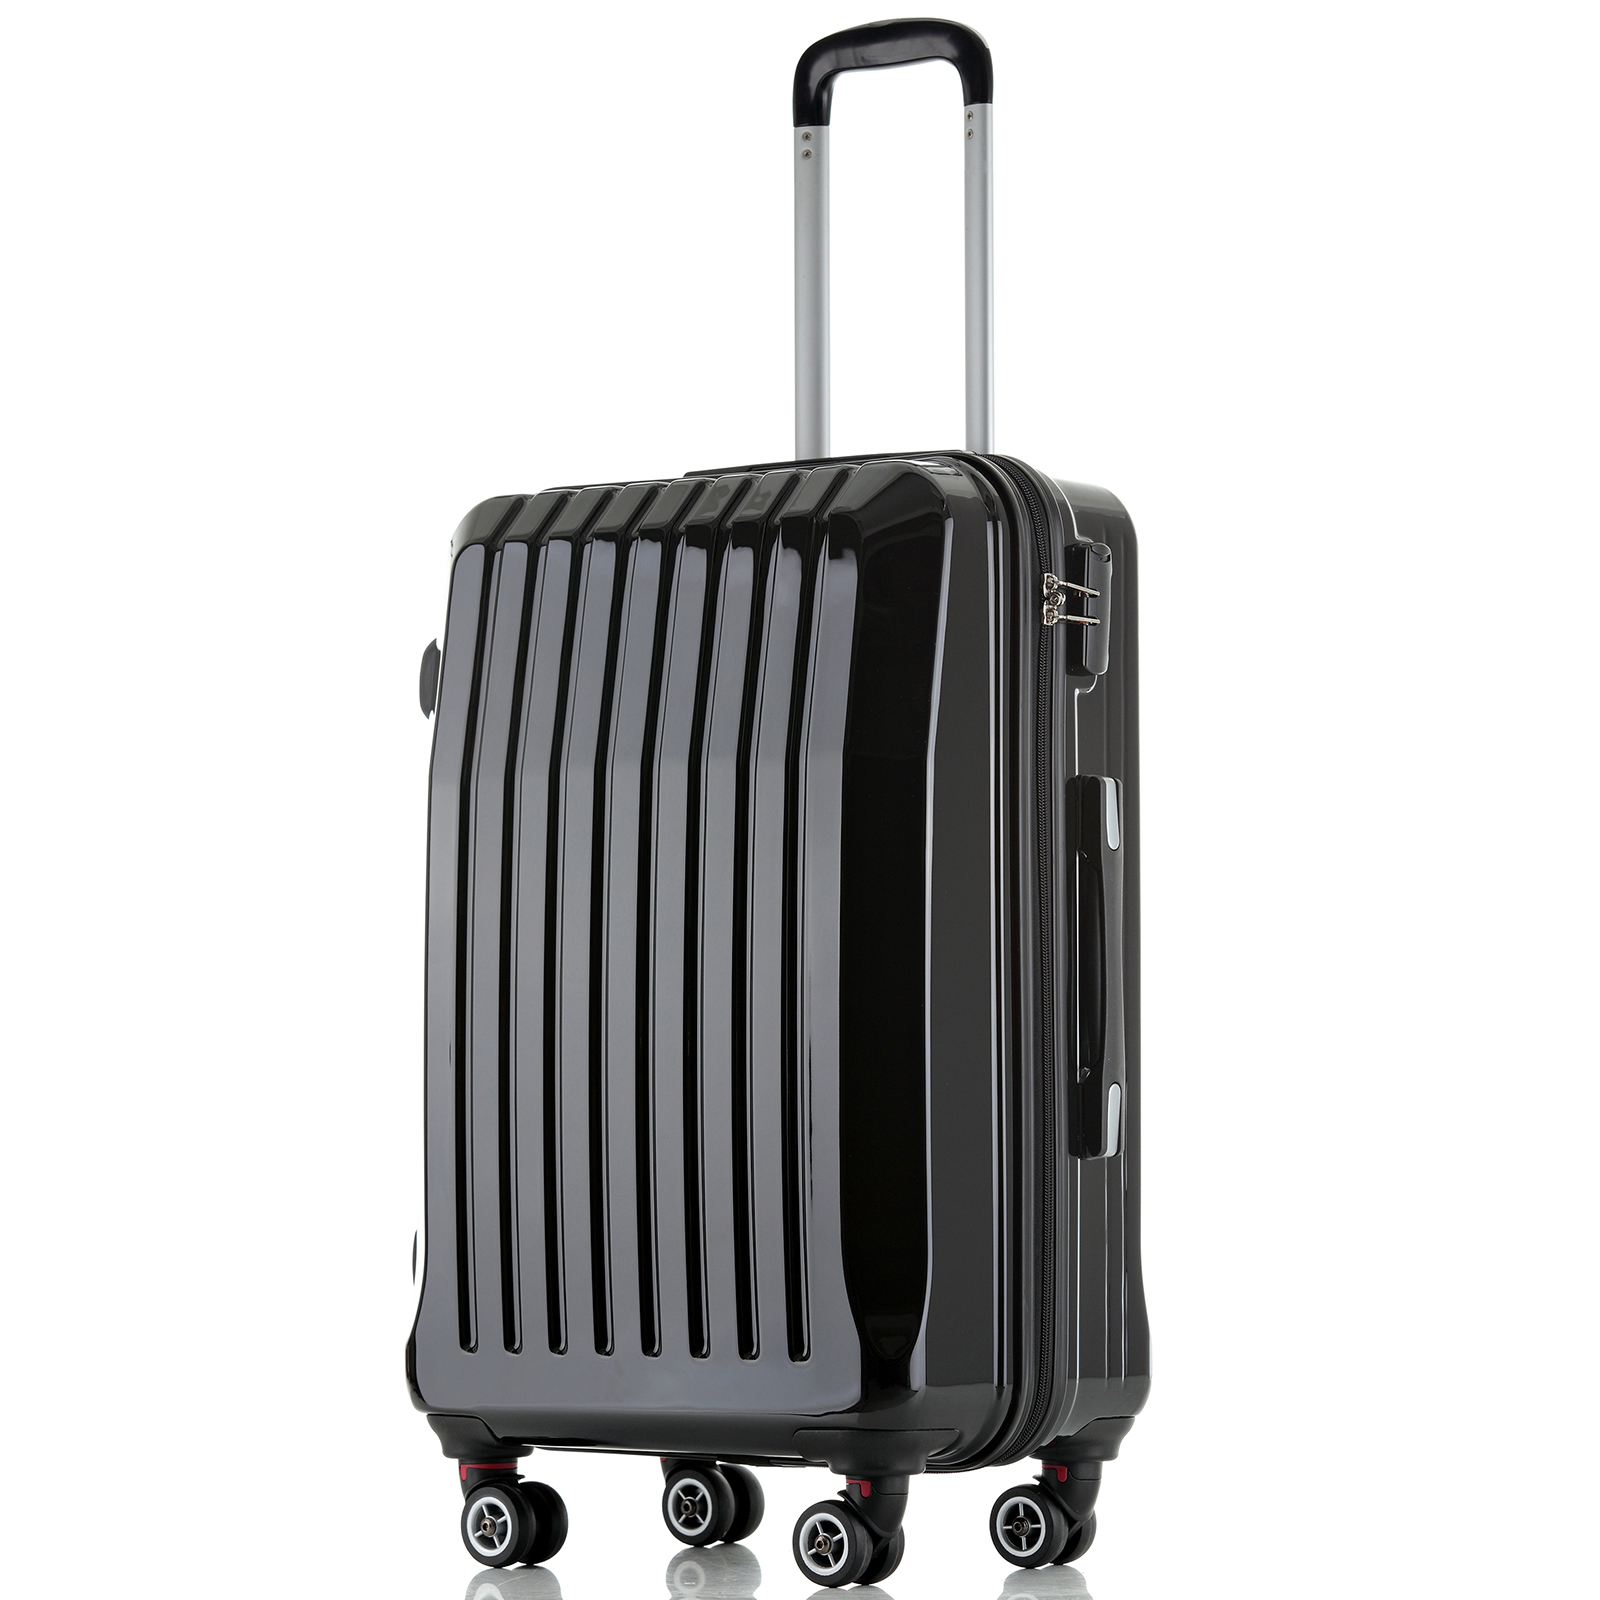 Hard Shell ABS Trolley Case 4 Spinner Wheels Suitcase Luggage ...